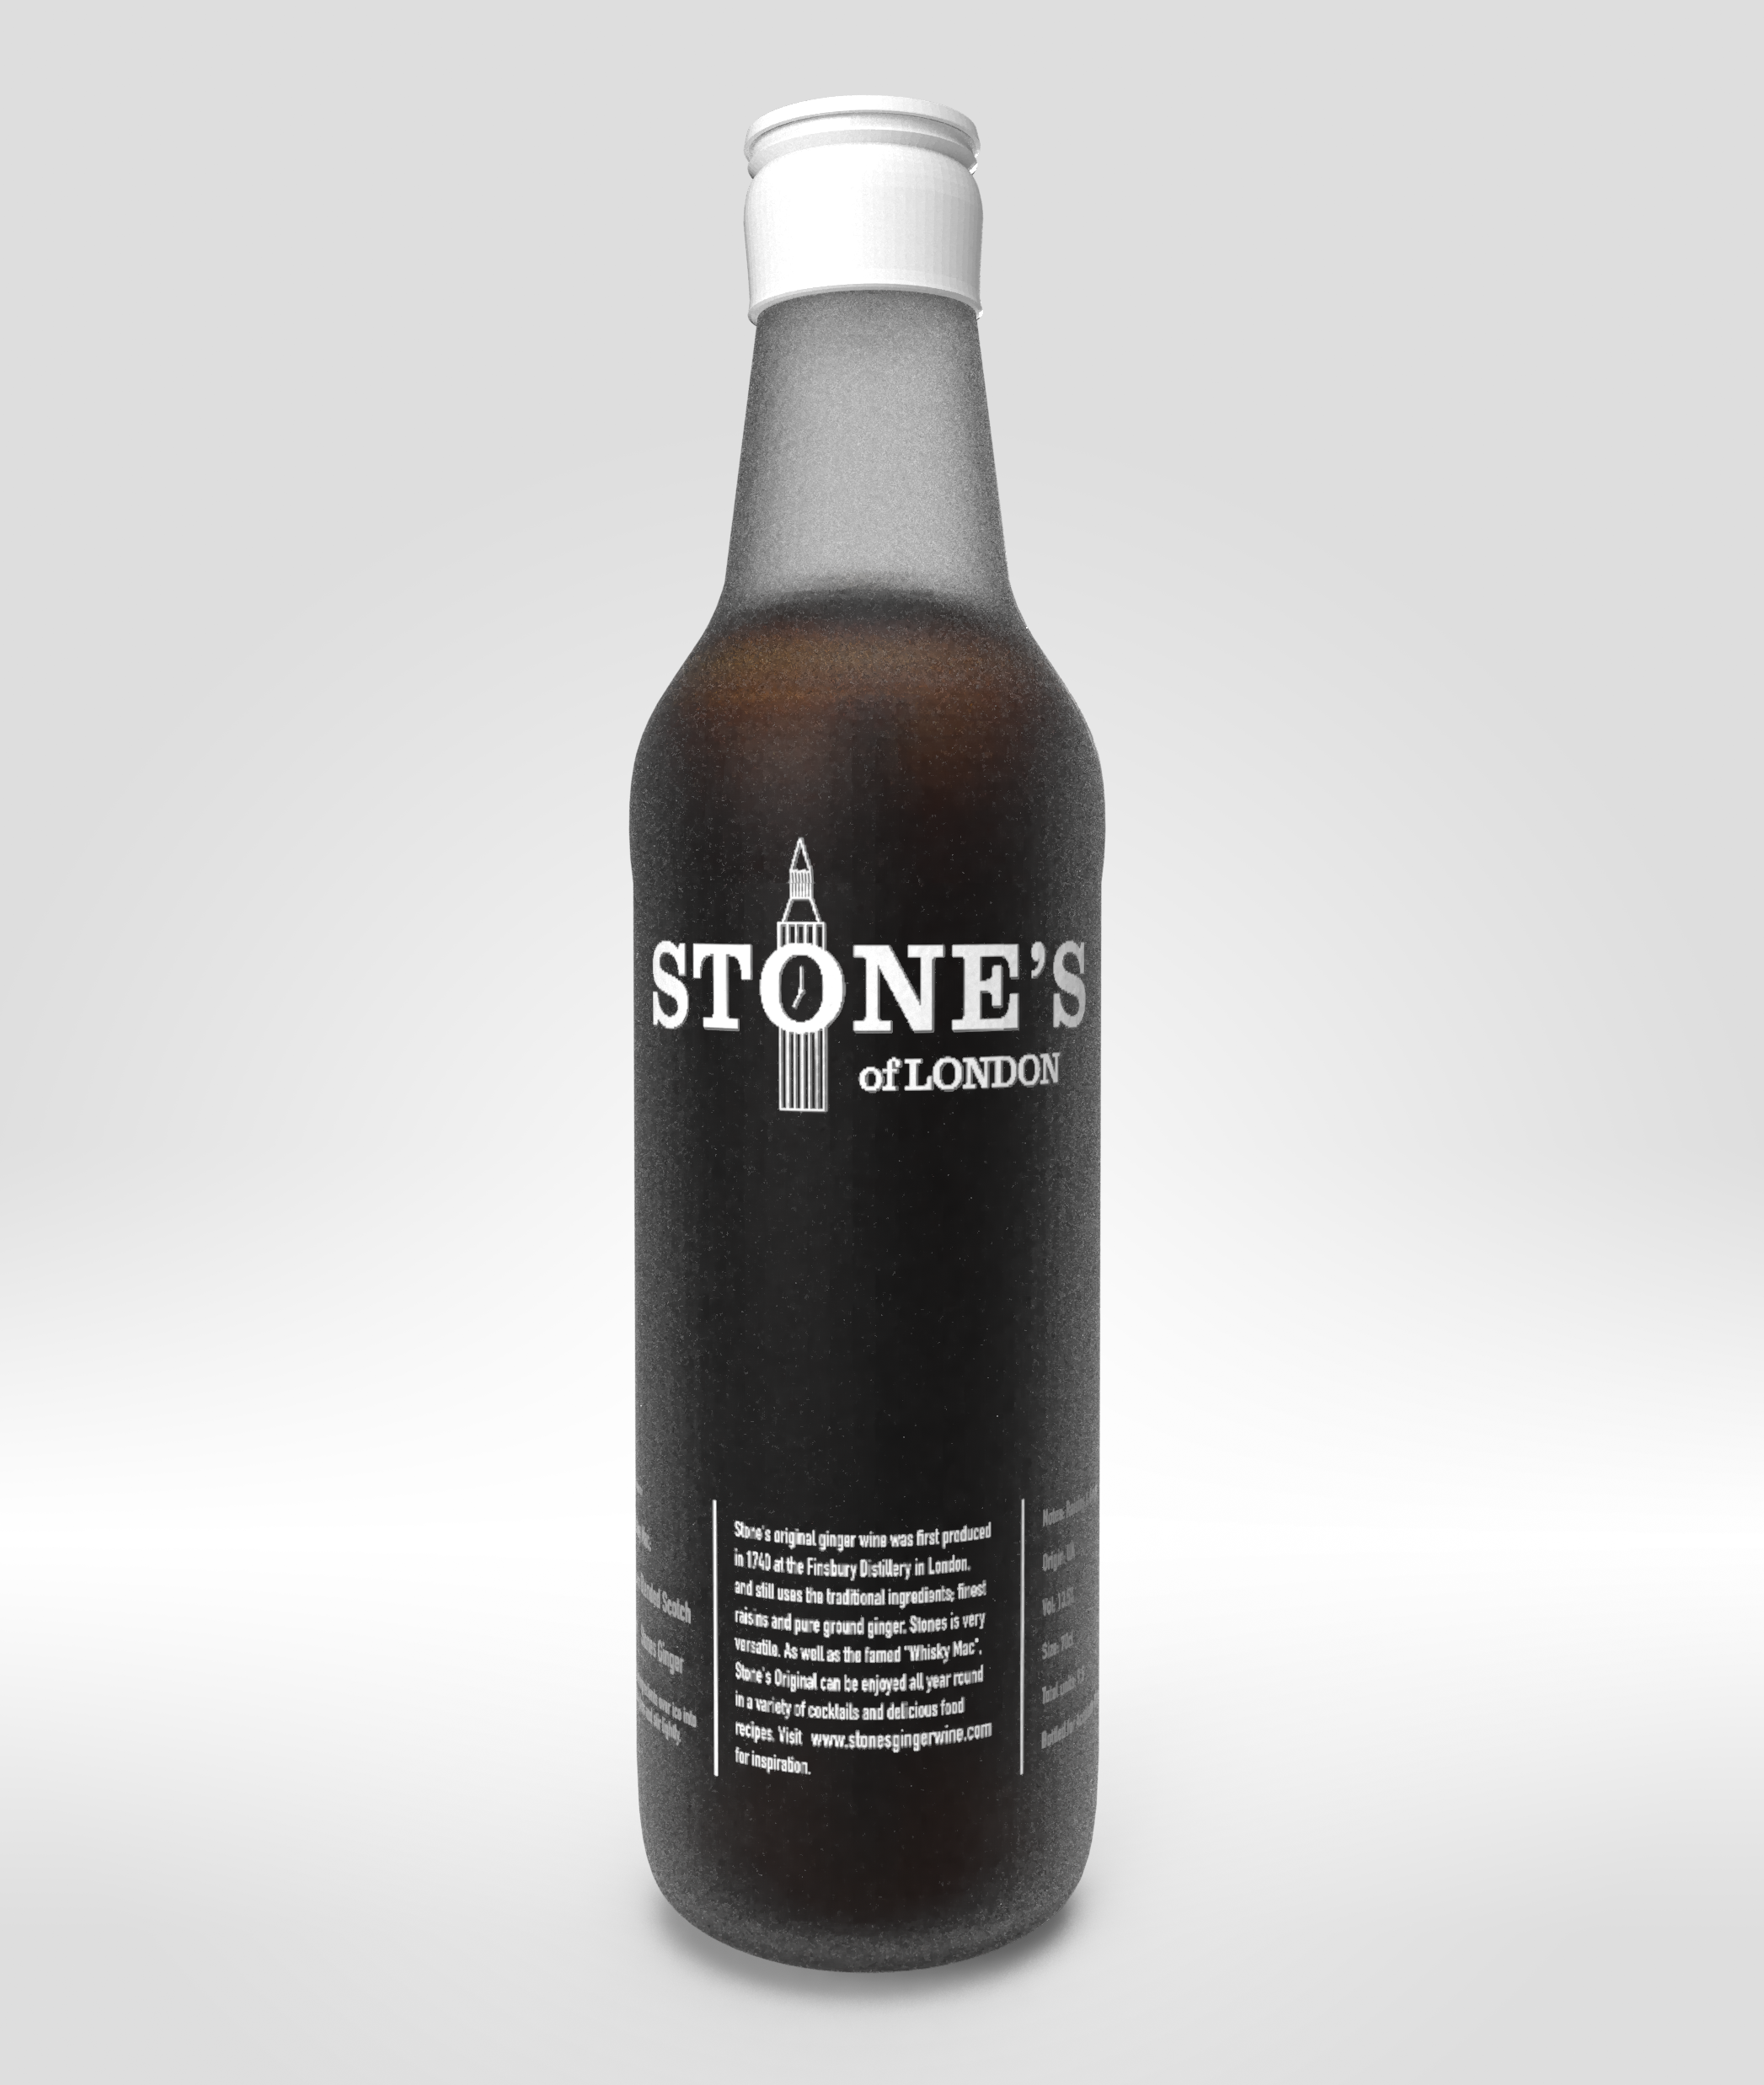 Stone's of London#2-snapshot.png